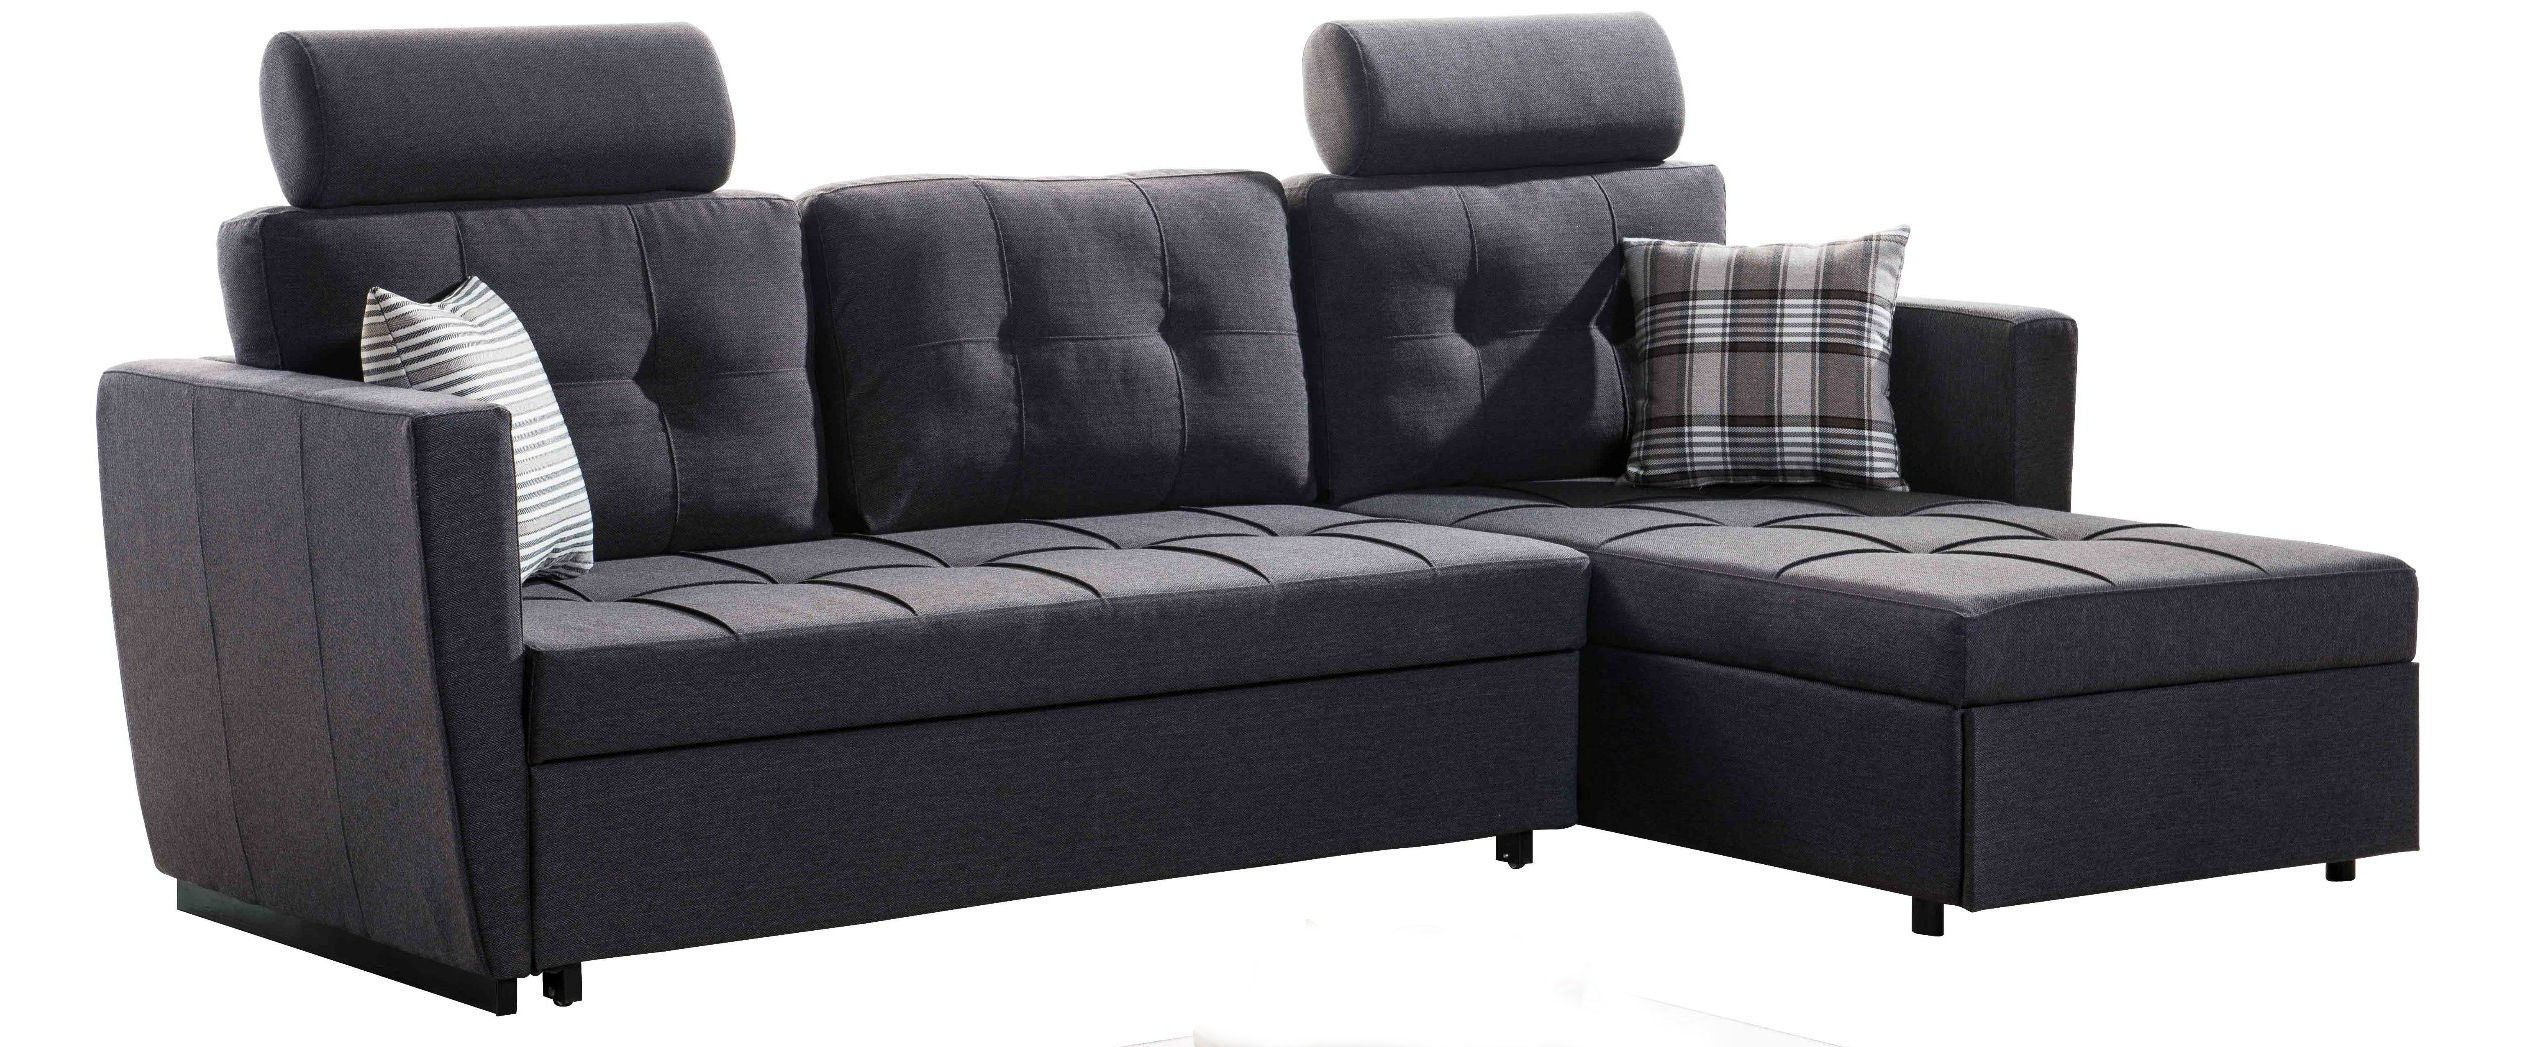 China Section Sofa Cum Bed With Drawer And Changeable Headrests   China  Corner Sofa Bed, Living Room Sofa